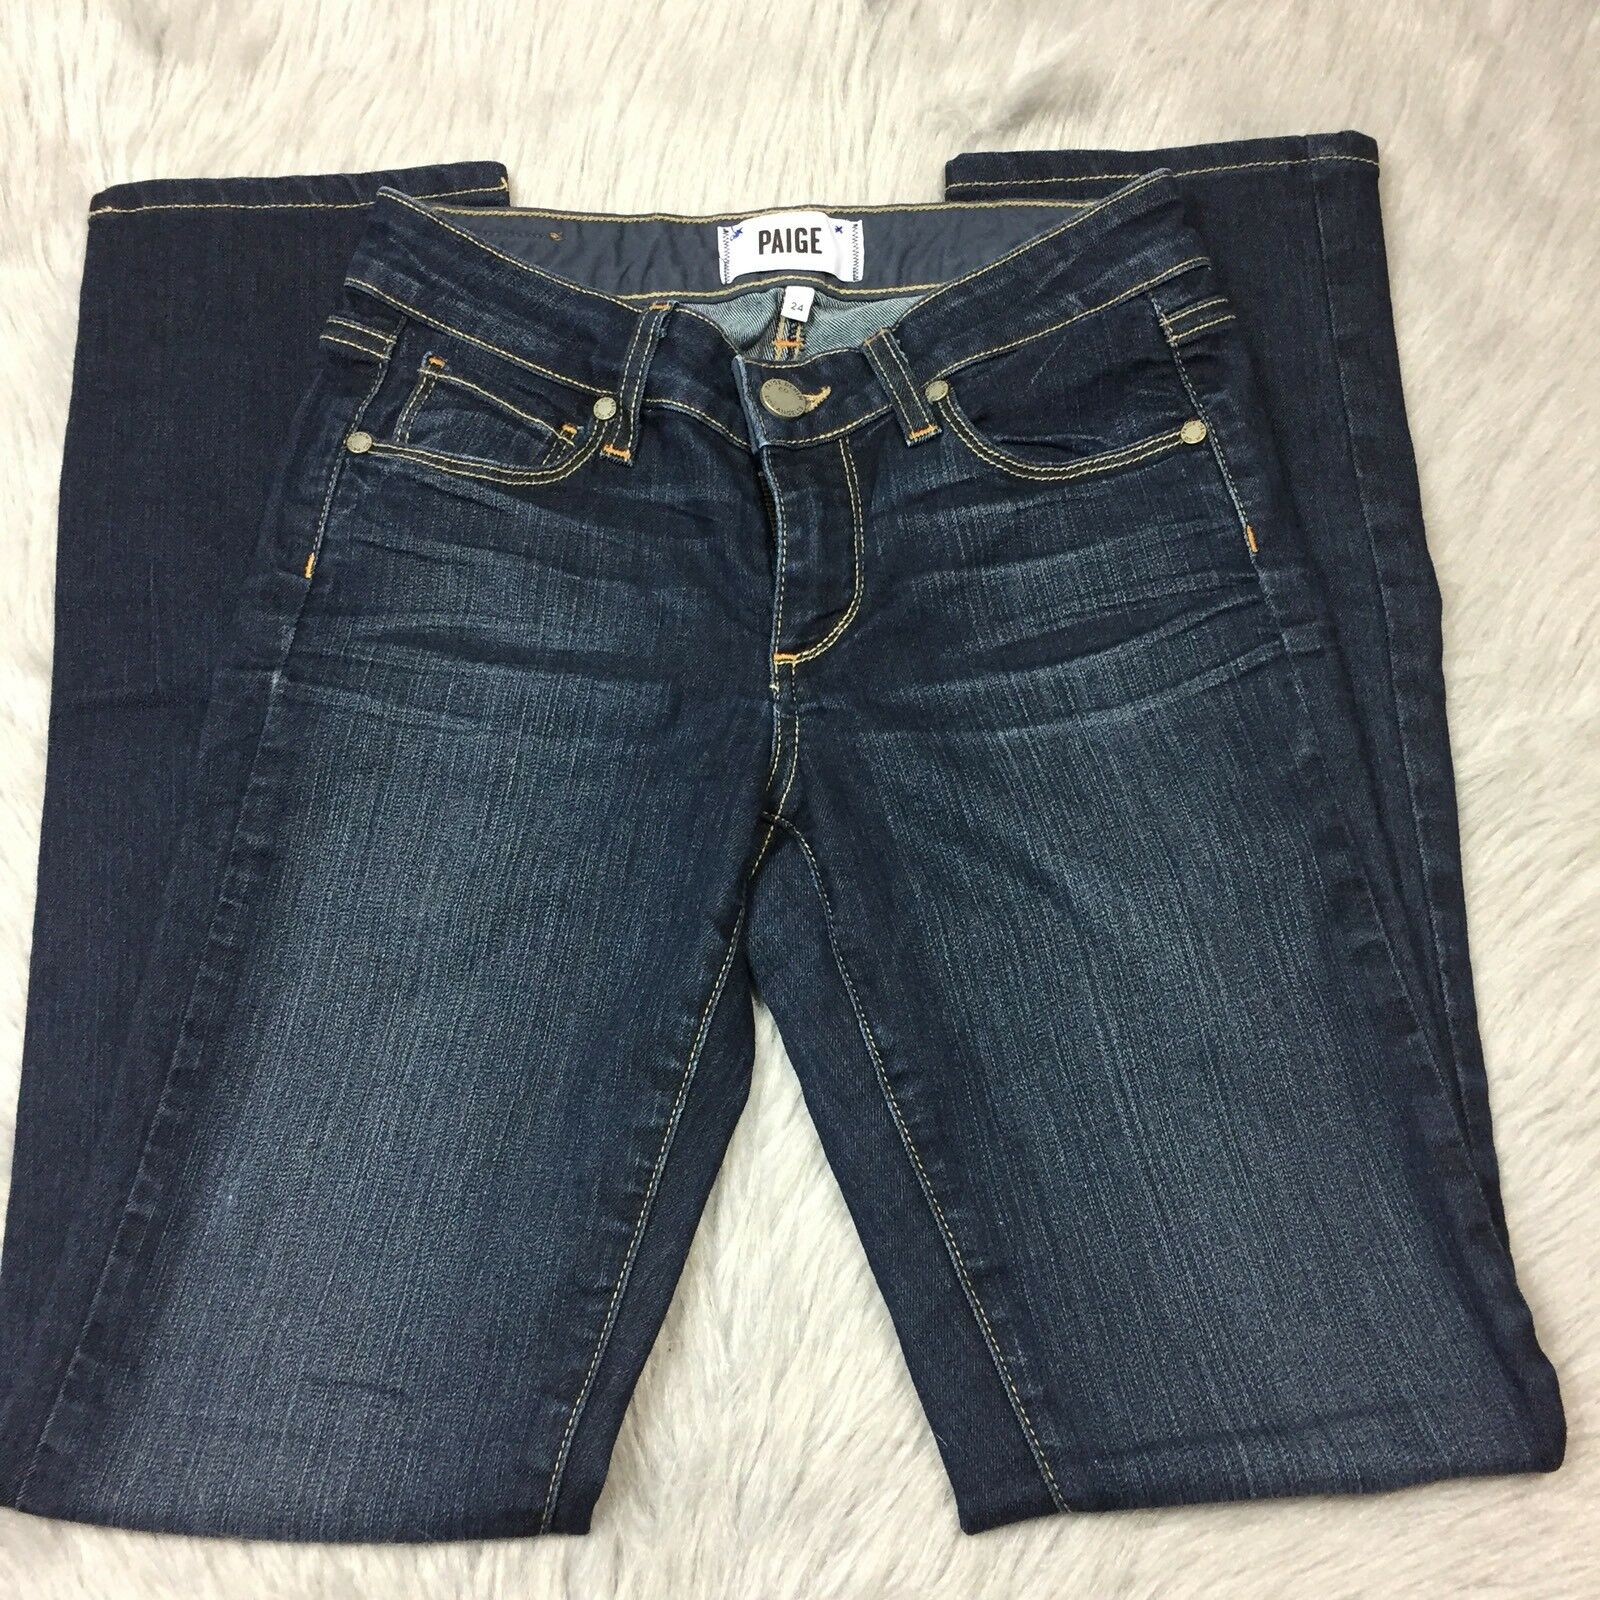 Paige Womens Skyline Straight Dark Wash Whiskered Jeans Sz 24